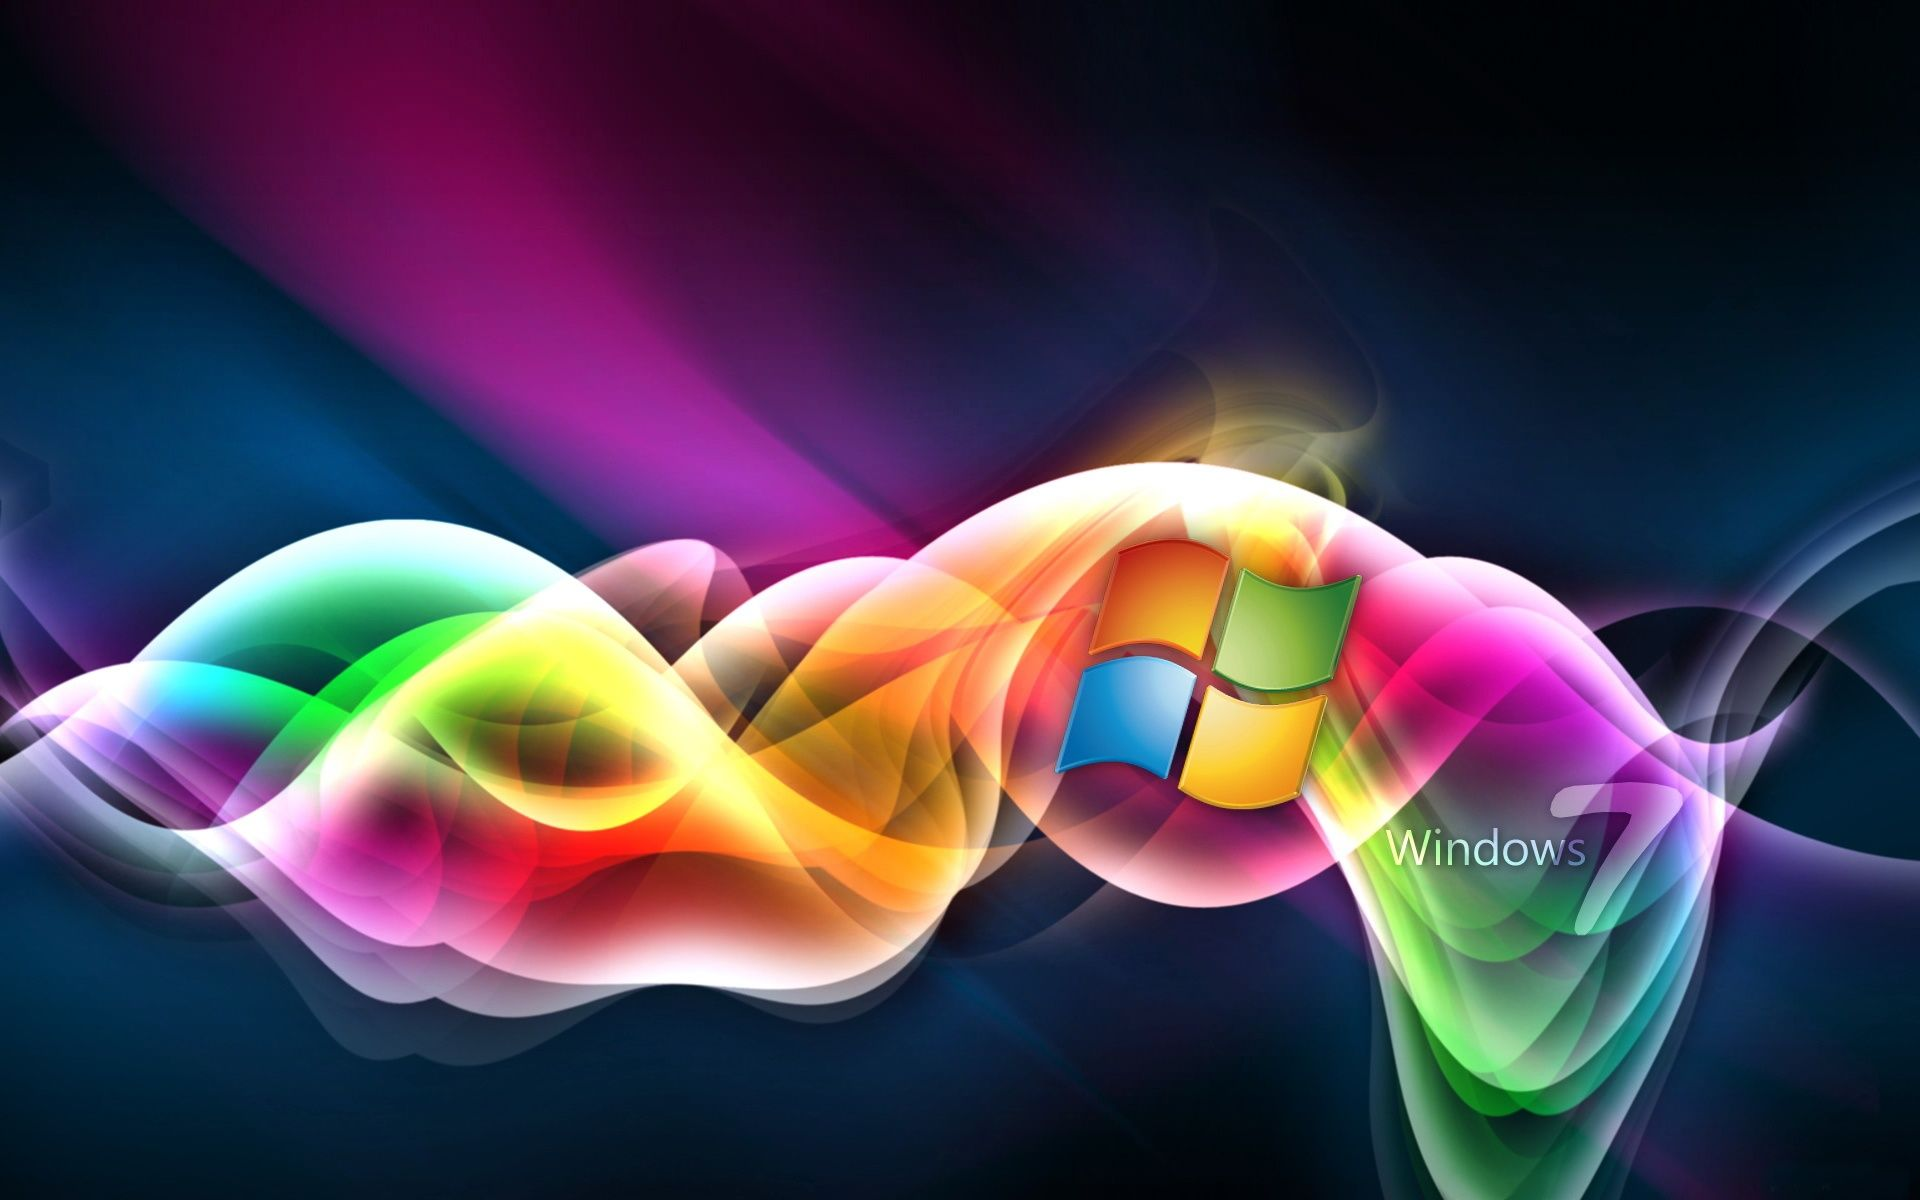 live desktop wallpapers for windows 7 011